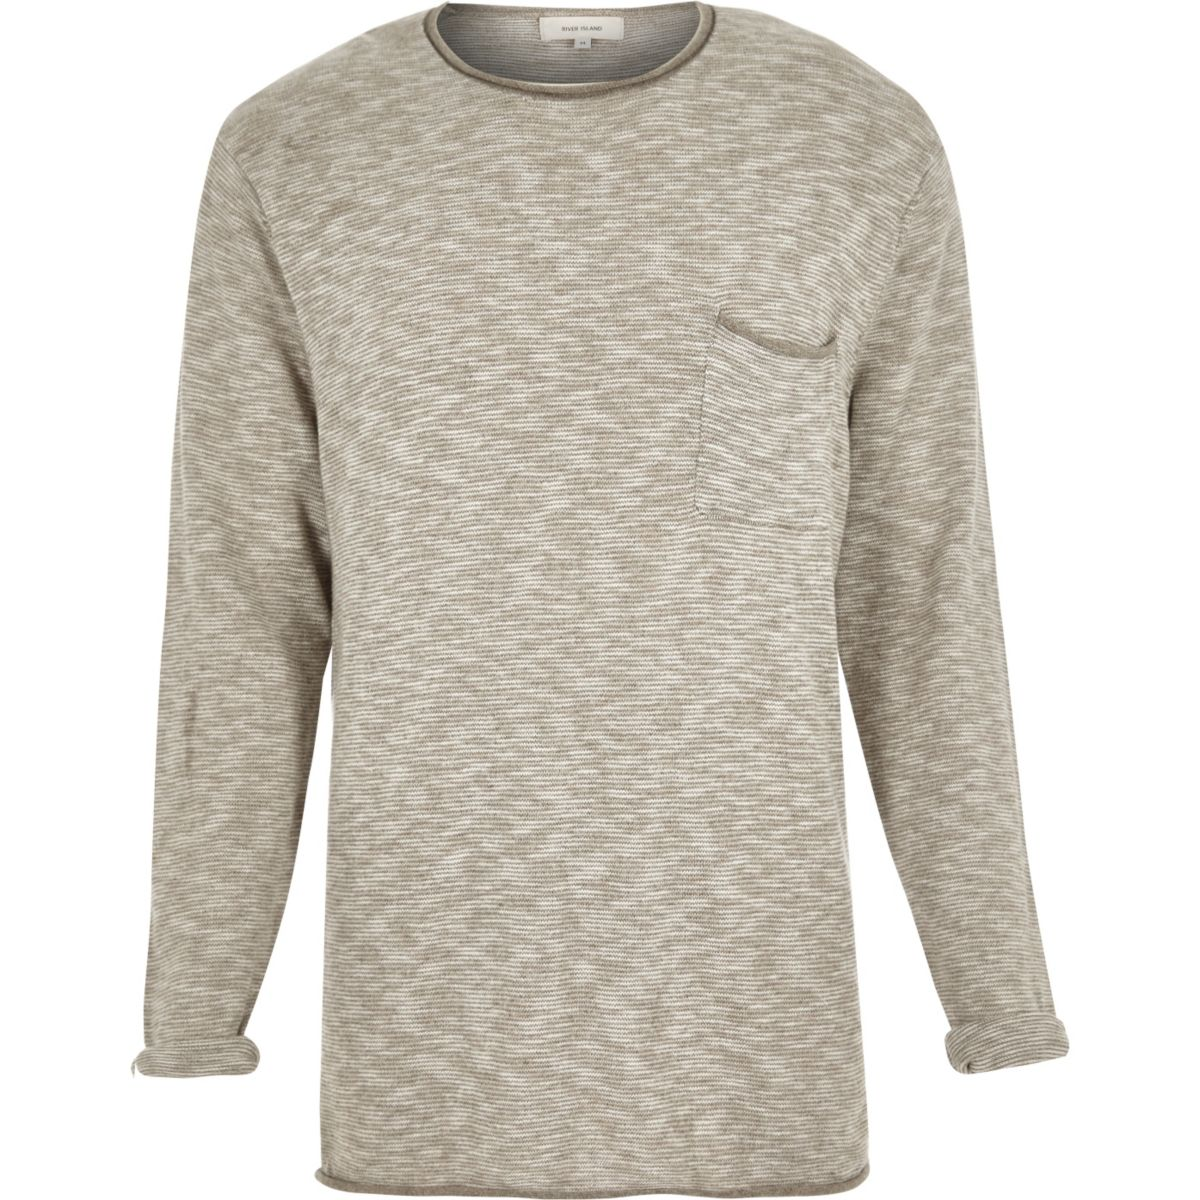 Stone texture sweater